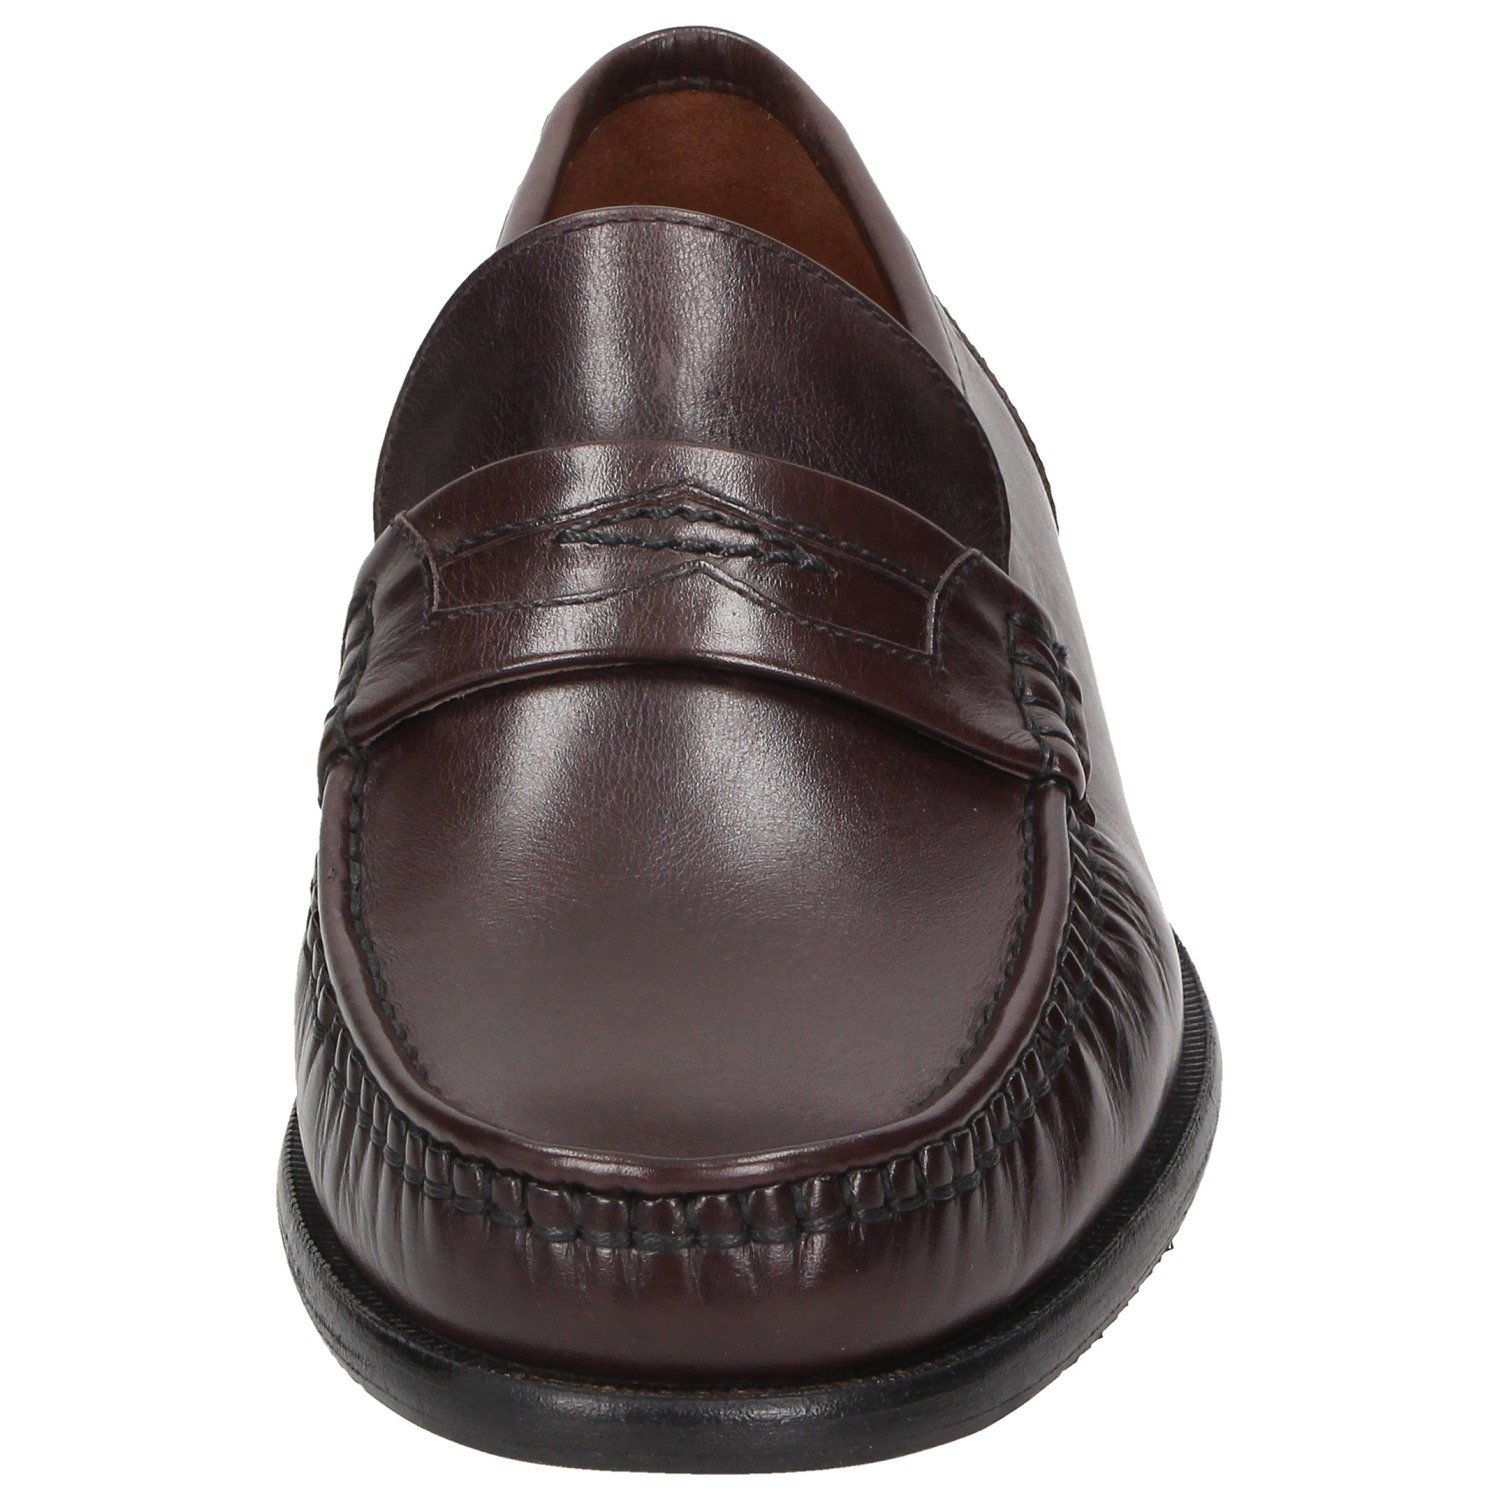 Sioux Online Slipperscabaco Shop Online Slipperscabaco Shop Sioux 8nkXOwP0